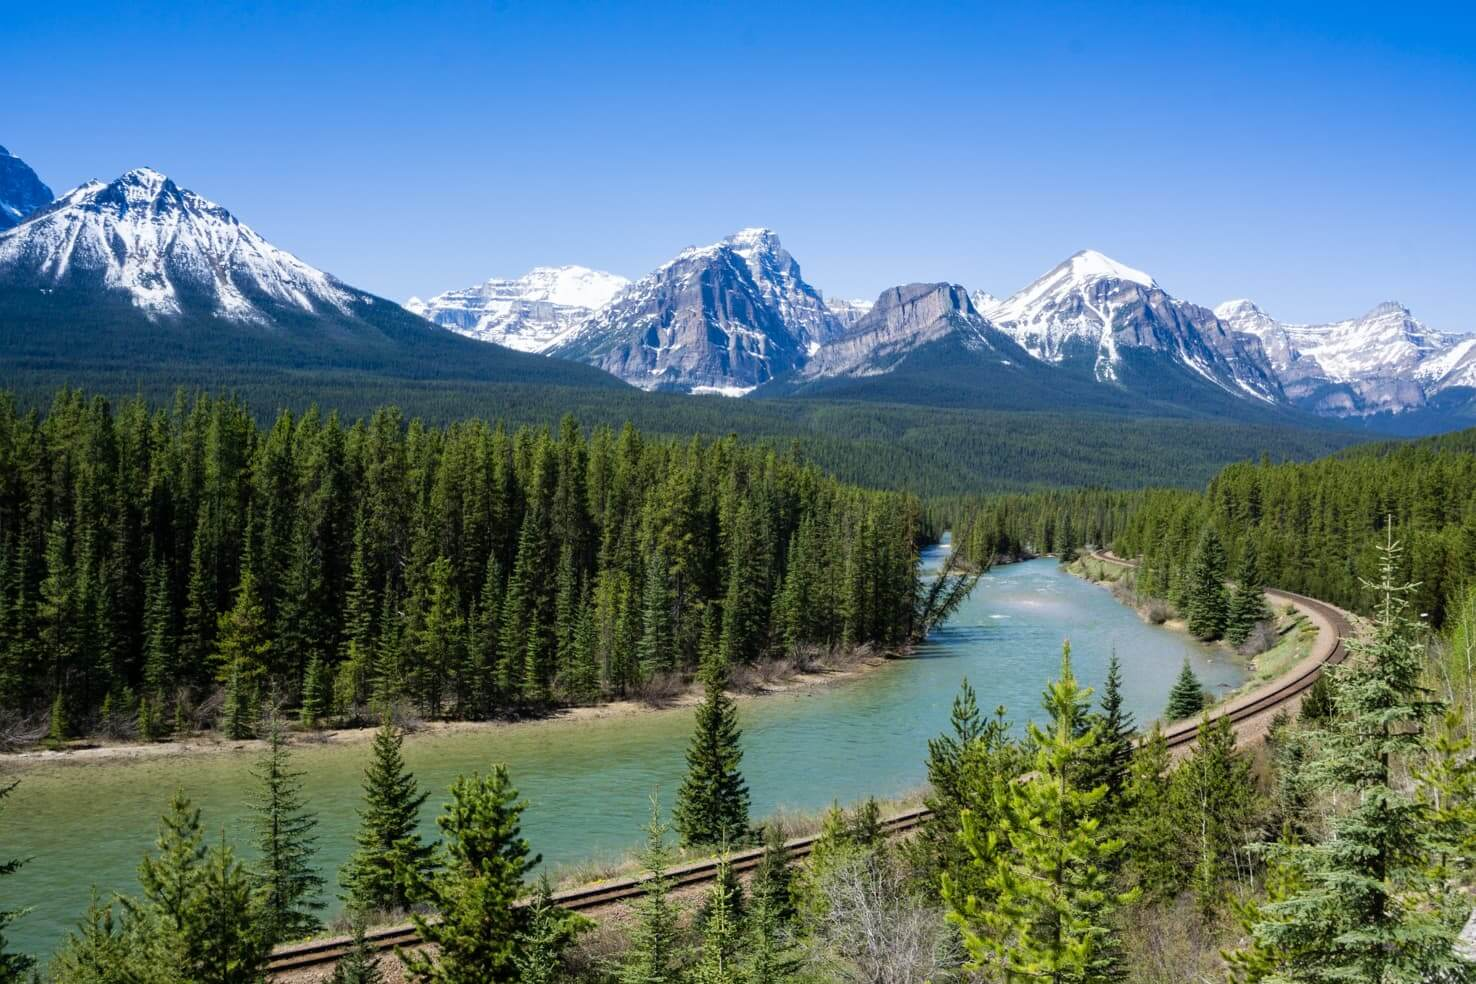 100 best things to do in Banff National Park, Canada - Drive the Bow Valley Parkway 2